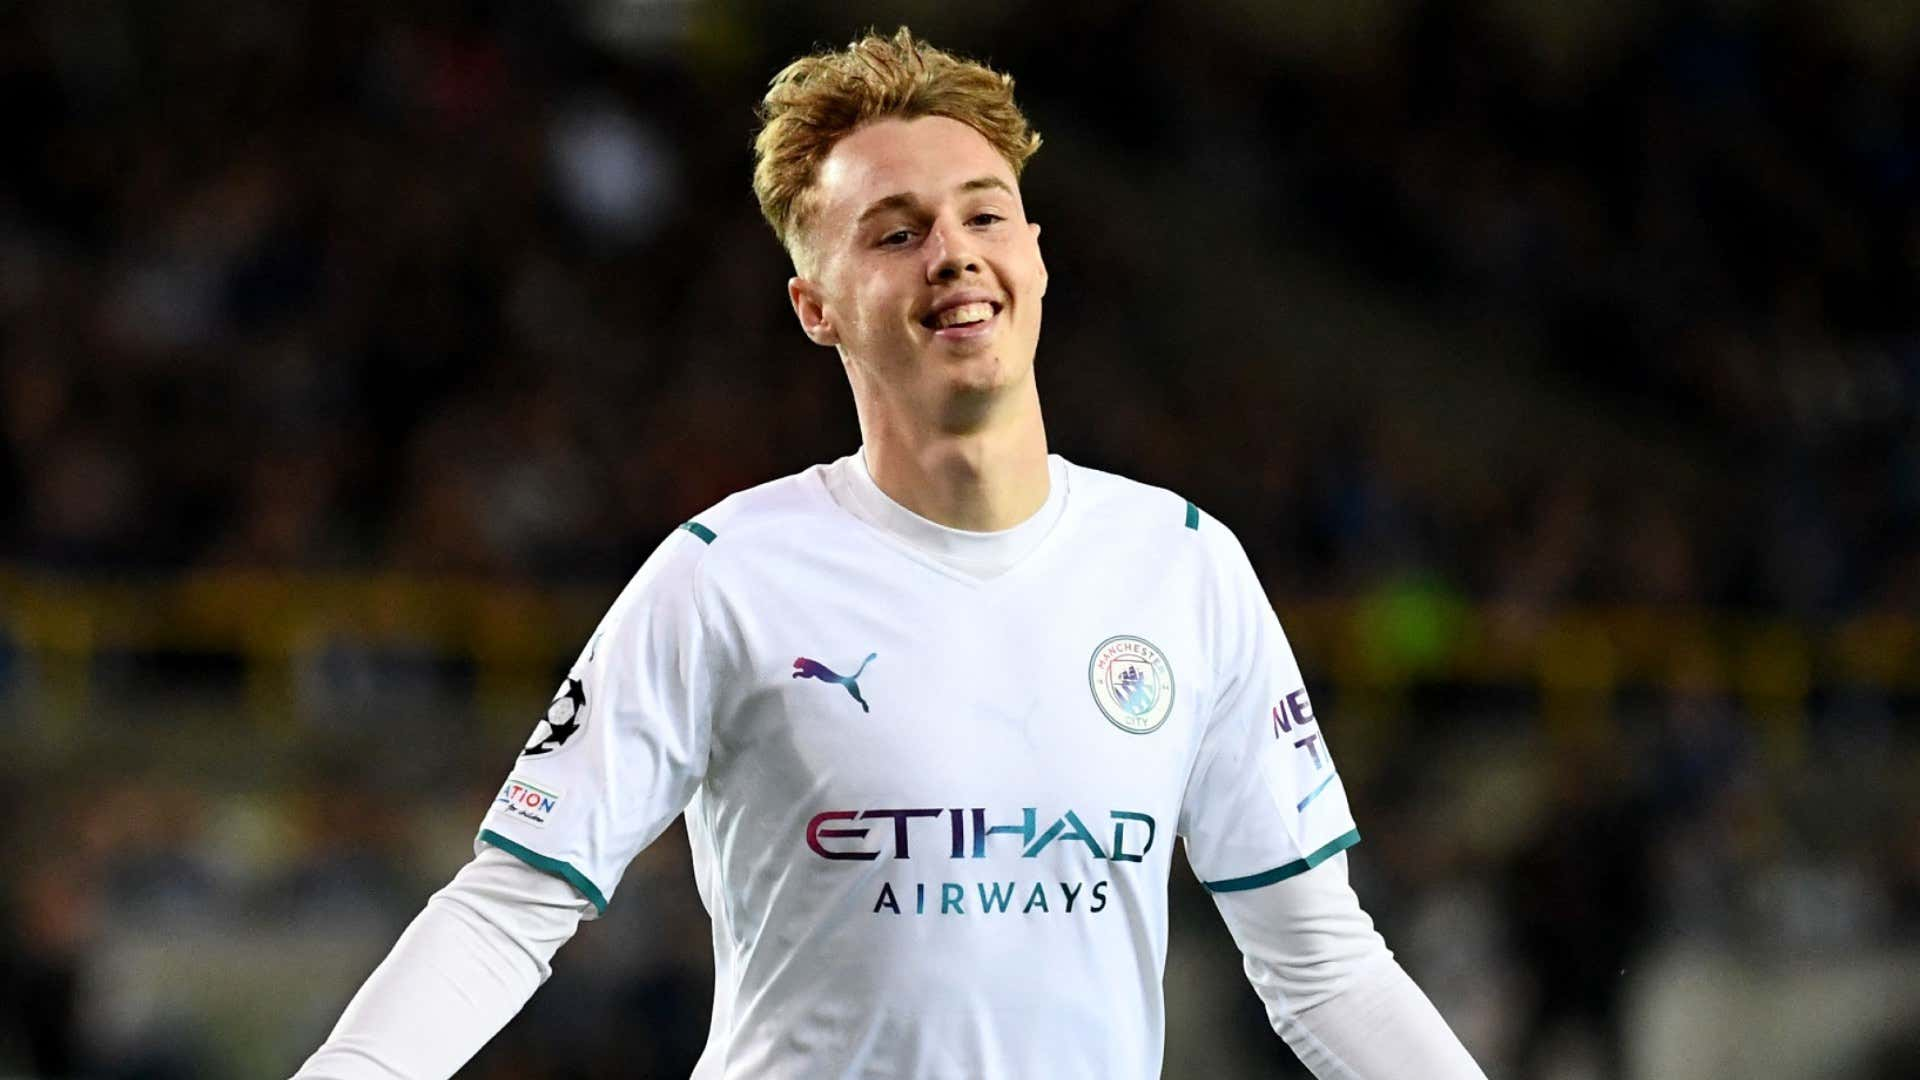 Manchester City starlet Palmer scores first Champions League goal against Club Brugge   Goal.com